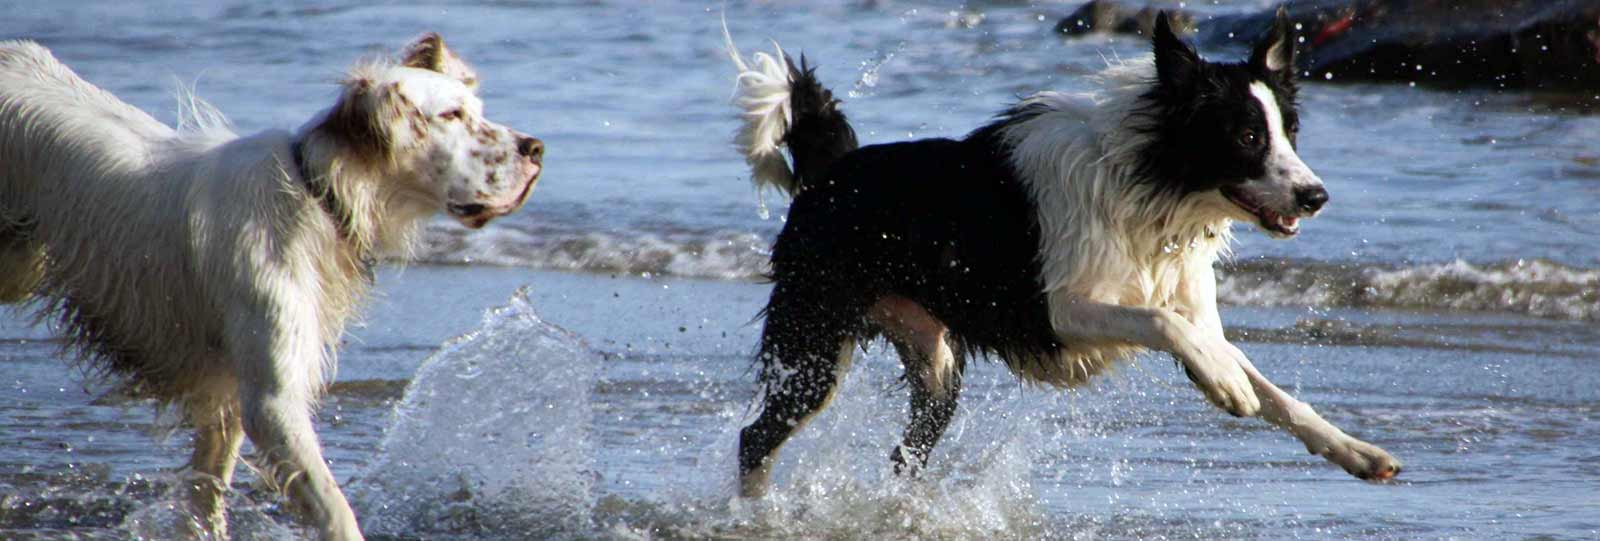 Two medium size/ medium breed dogs running at the beach.